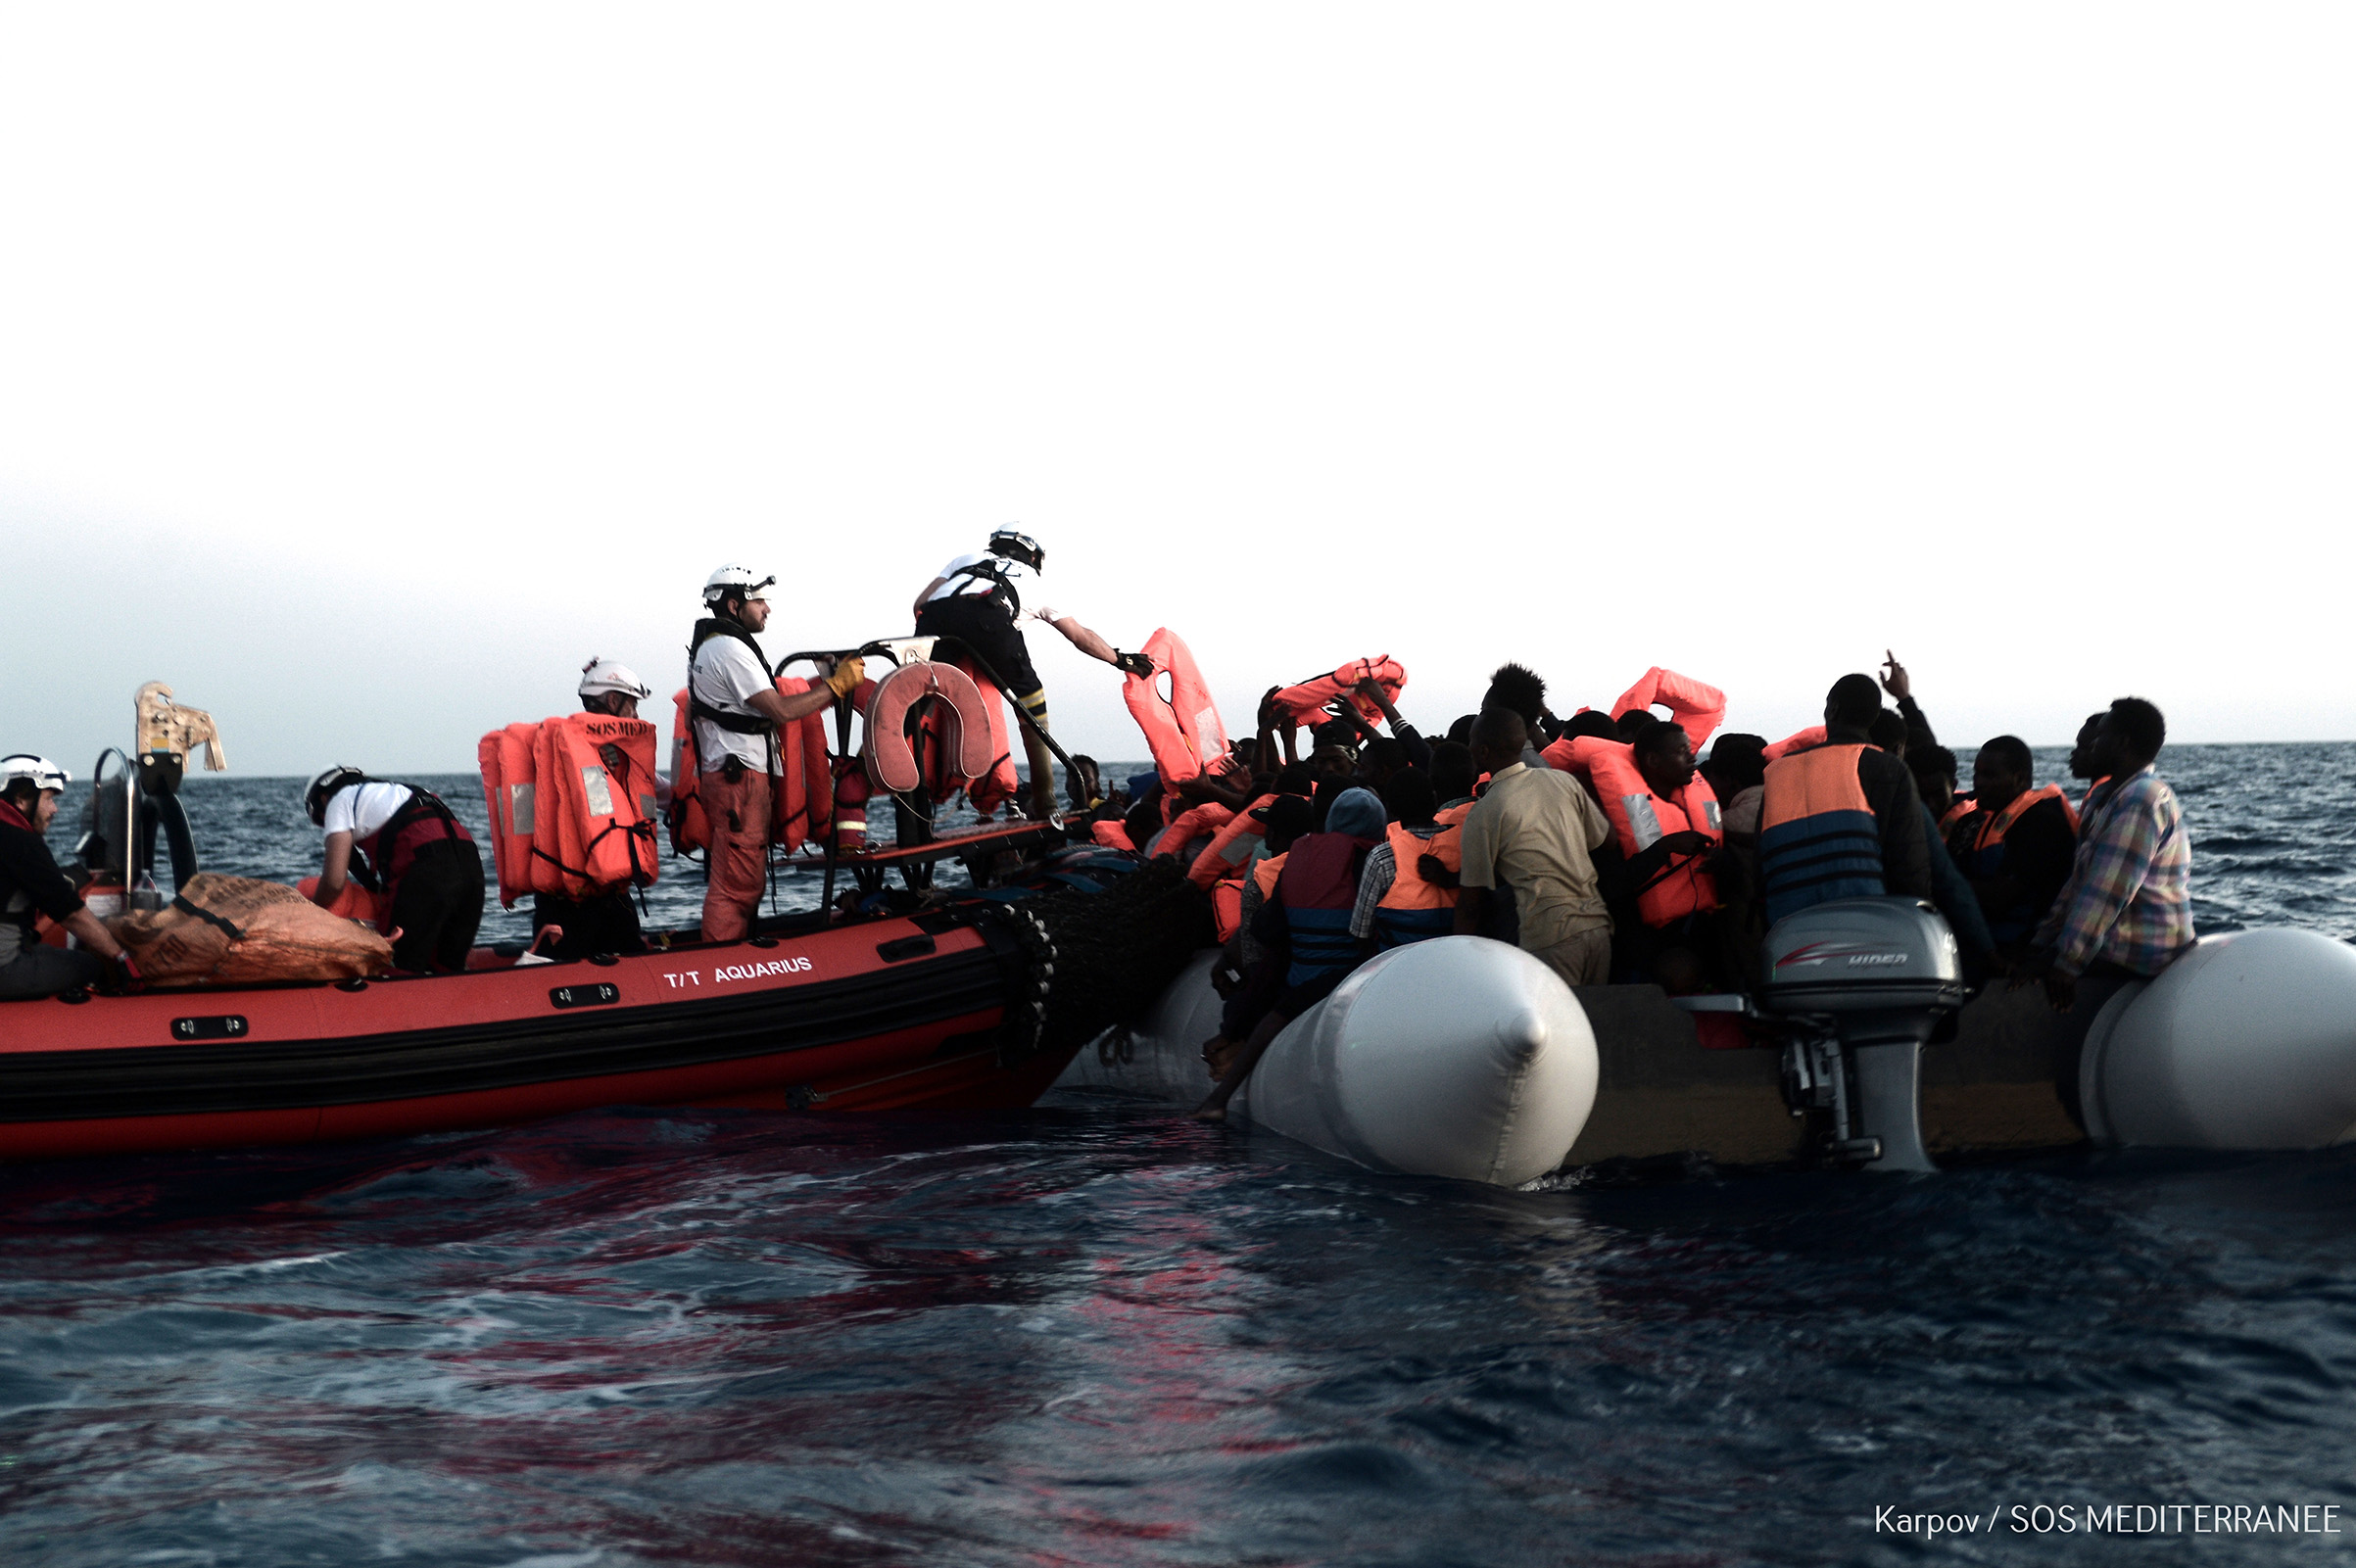 A handout photo made available by the NGO 'SOS Mediterranee' on 11 June shows the sea rescue of a total of 629 migrants in the Mediterranean, June 9 2018. The rescue vessel 'Aquarius', carrying a total of 629 migrants rescued off the Libyan coast, was denied access to ports in Italy and Malta in a diplomatic row between the two countries.